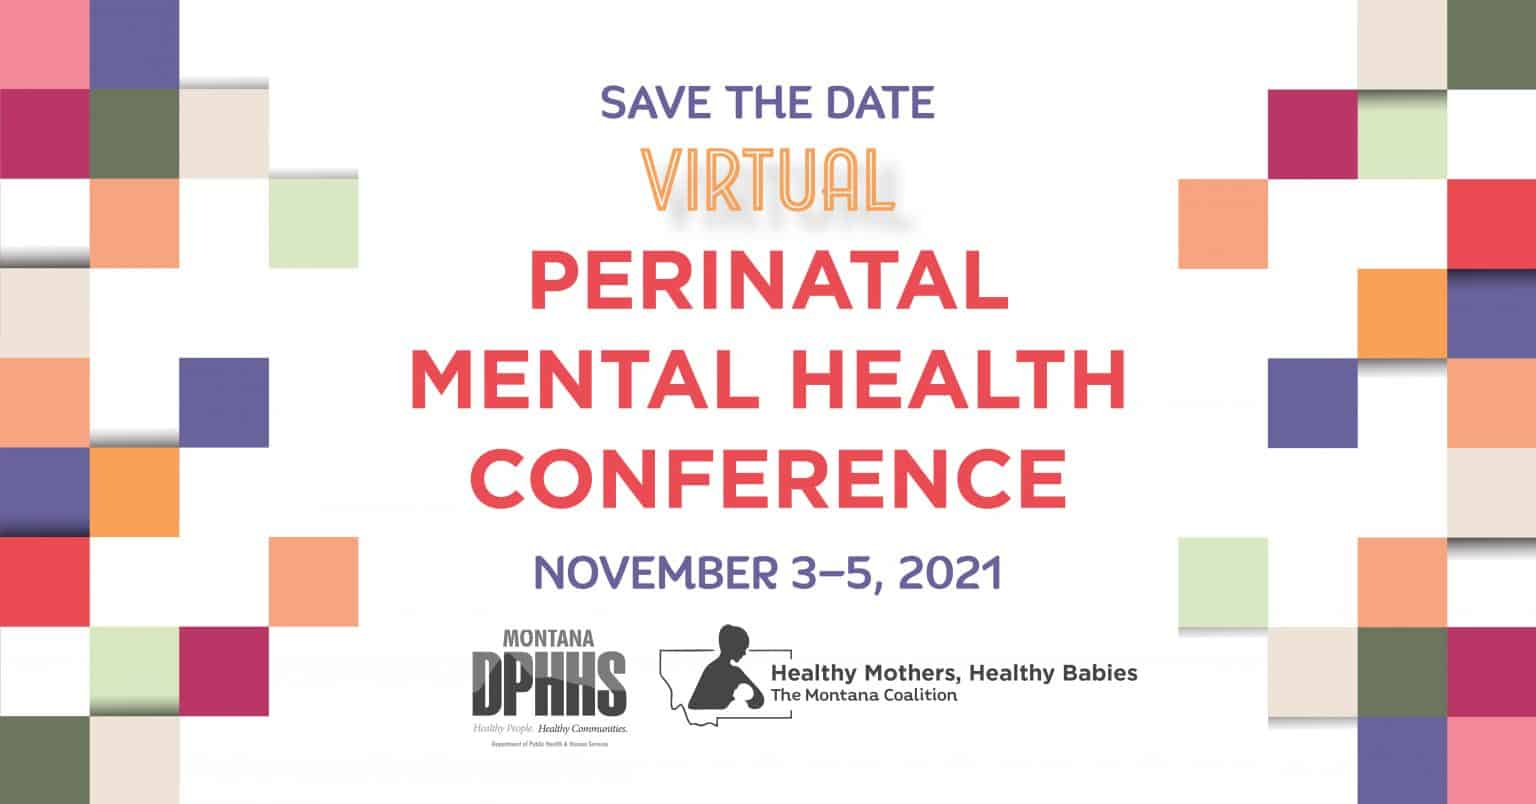 Save the Date for Perinatal Mental Health Conference